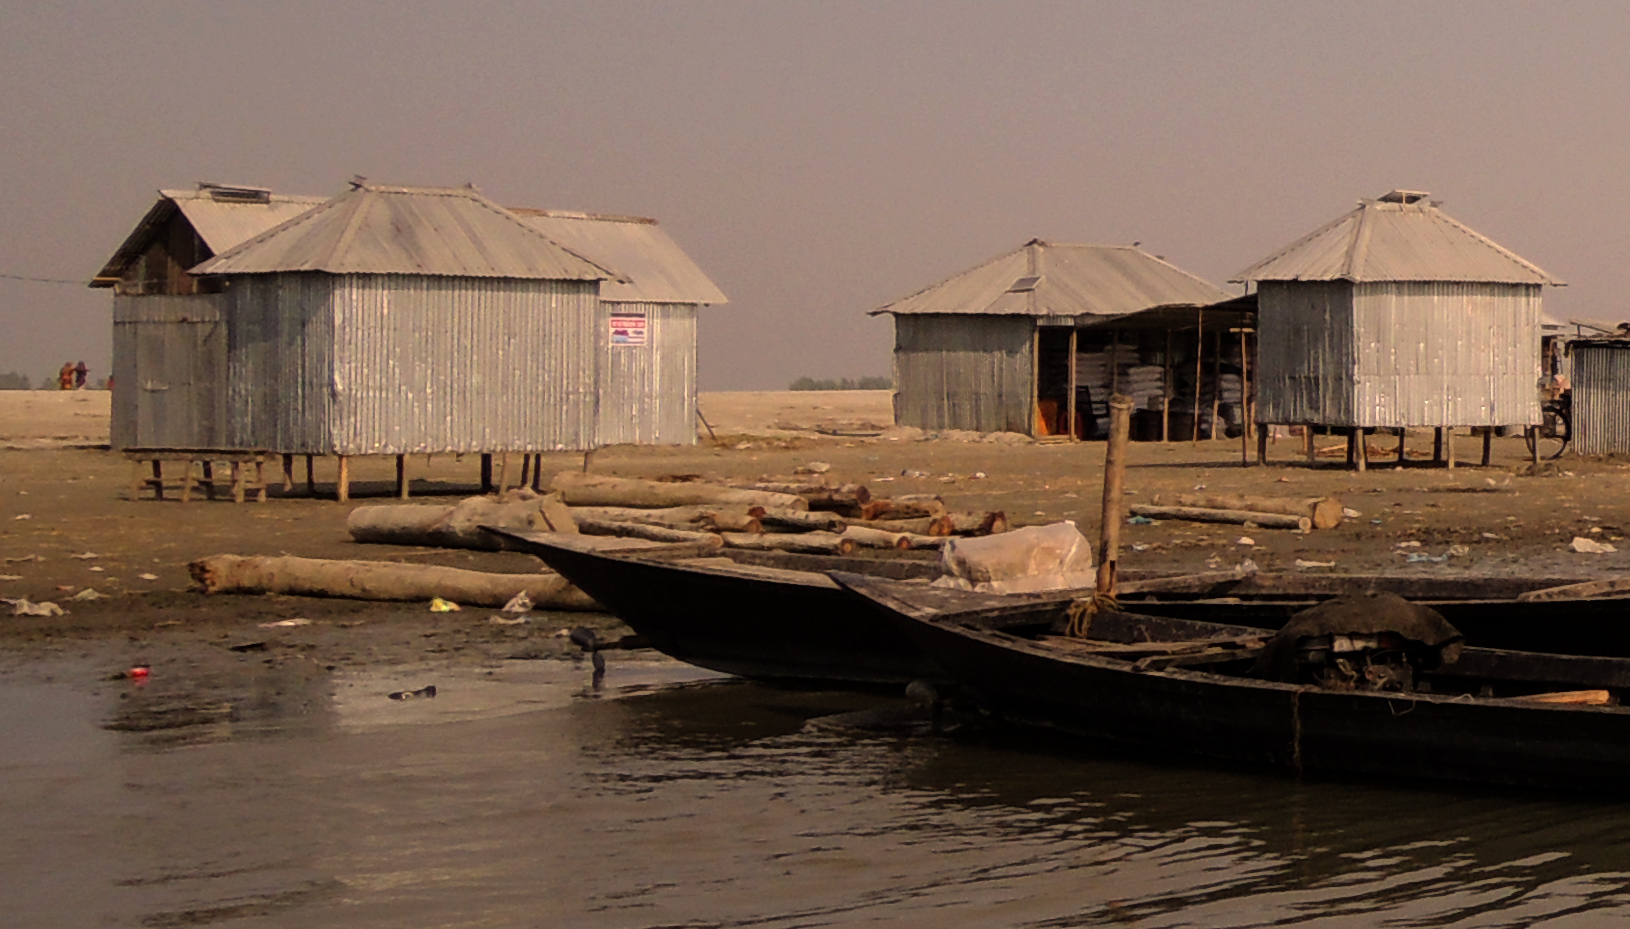 Shelters on the Brahmaputra River in Bangladesh.